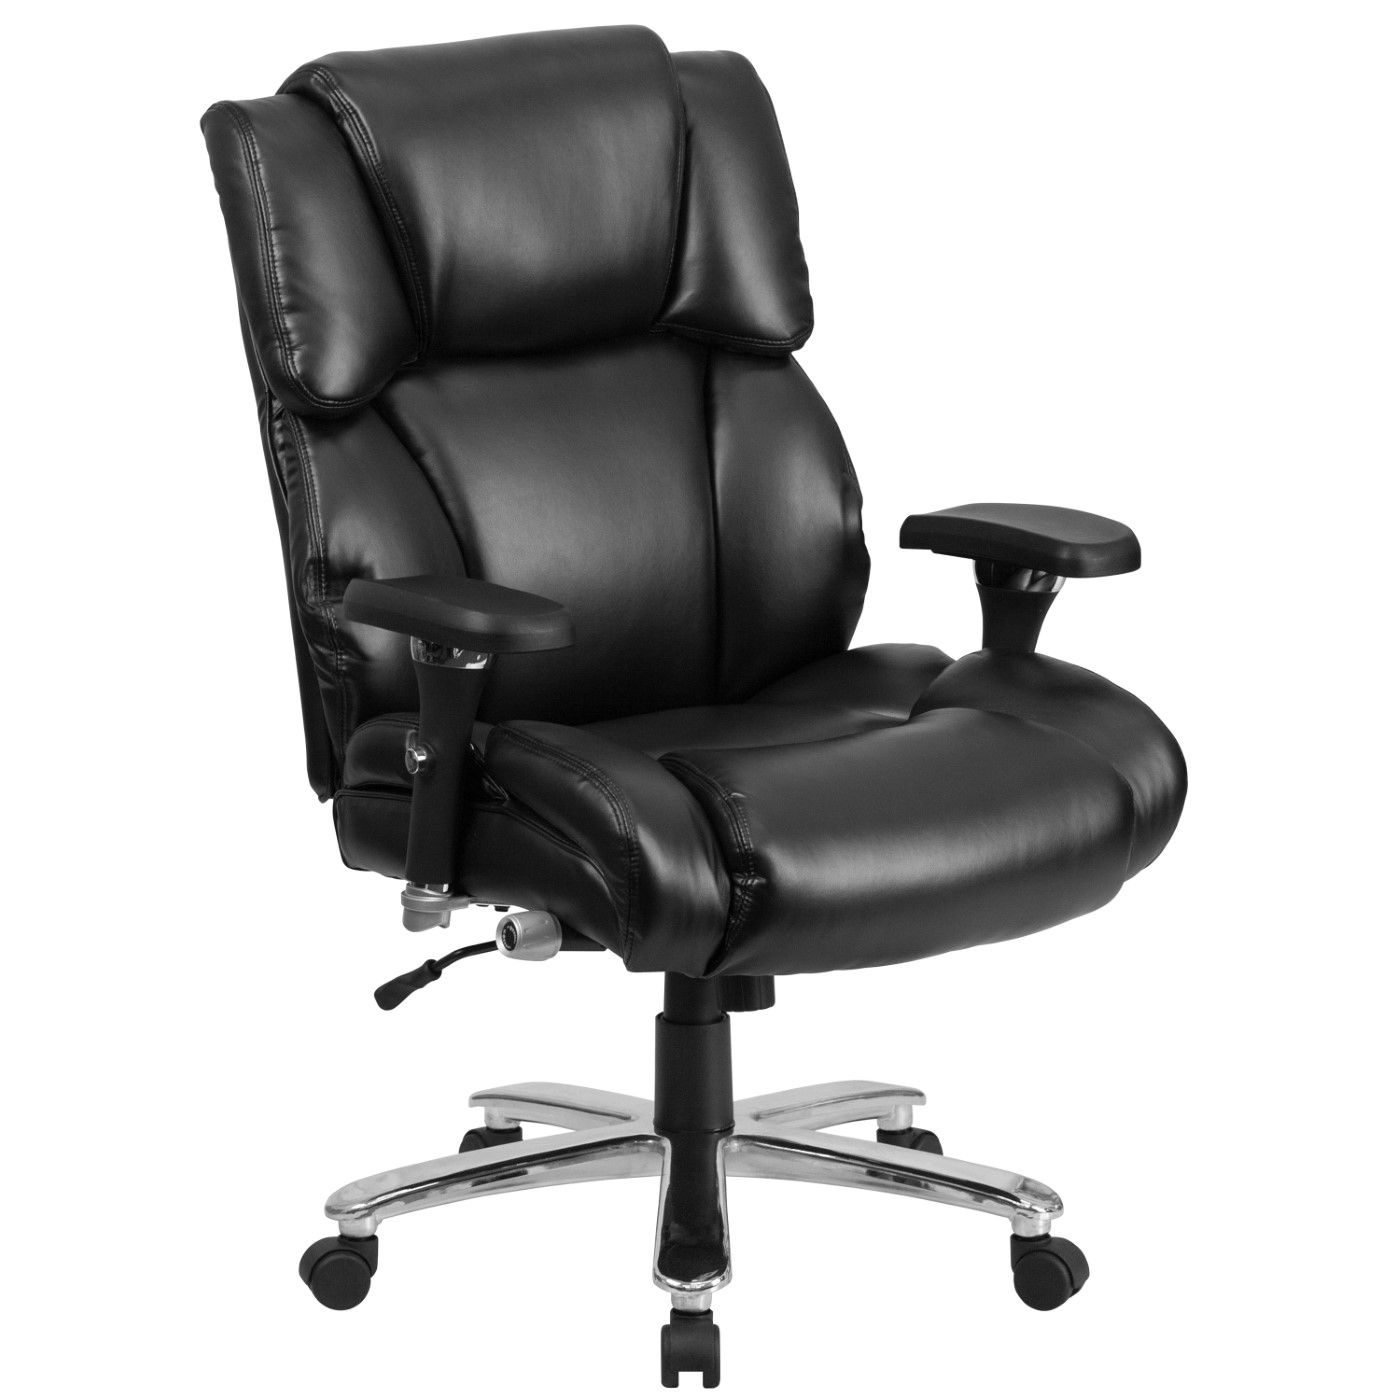 TOUGH ENOUGH Series 24/7 Intensive Use Big & Tall 400 lb. Rated Black LeatherSoft Executive Lumbar Ergonomic Office Chair